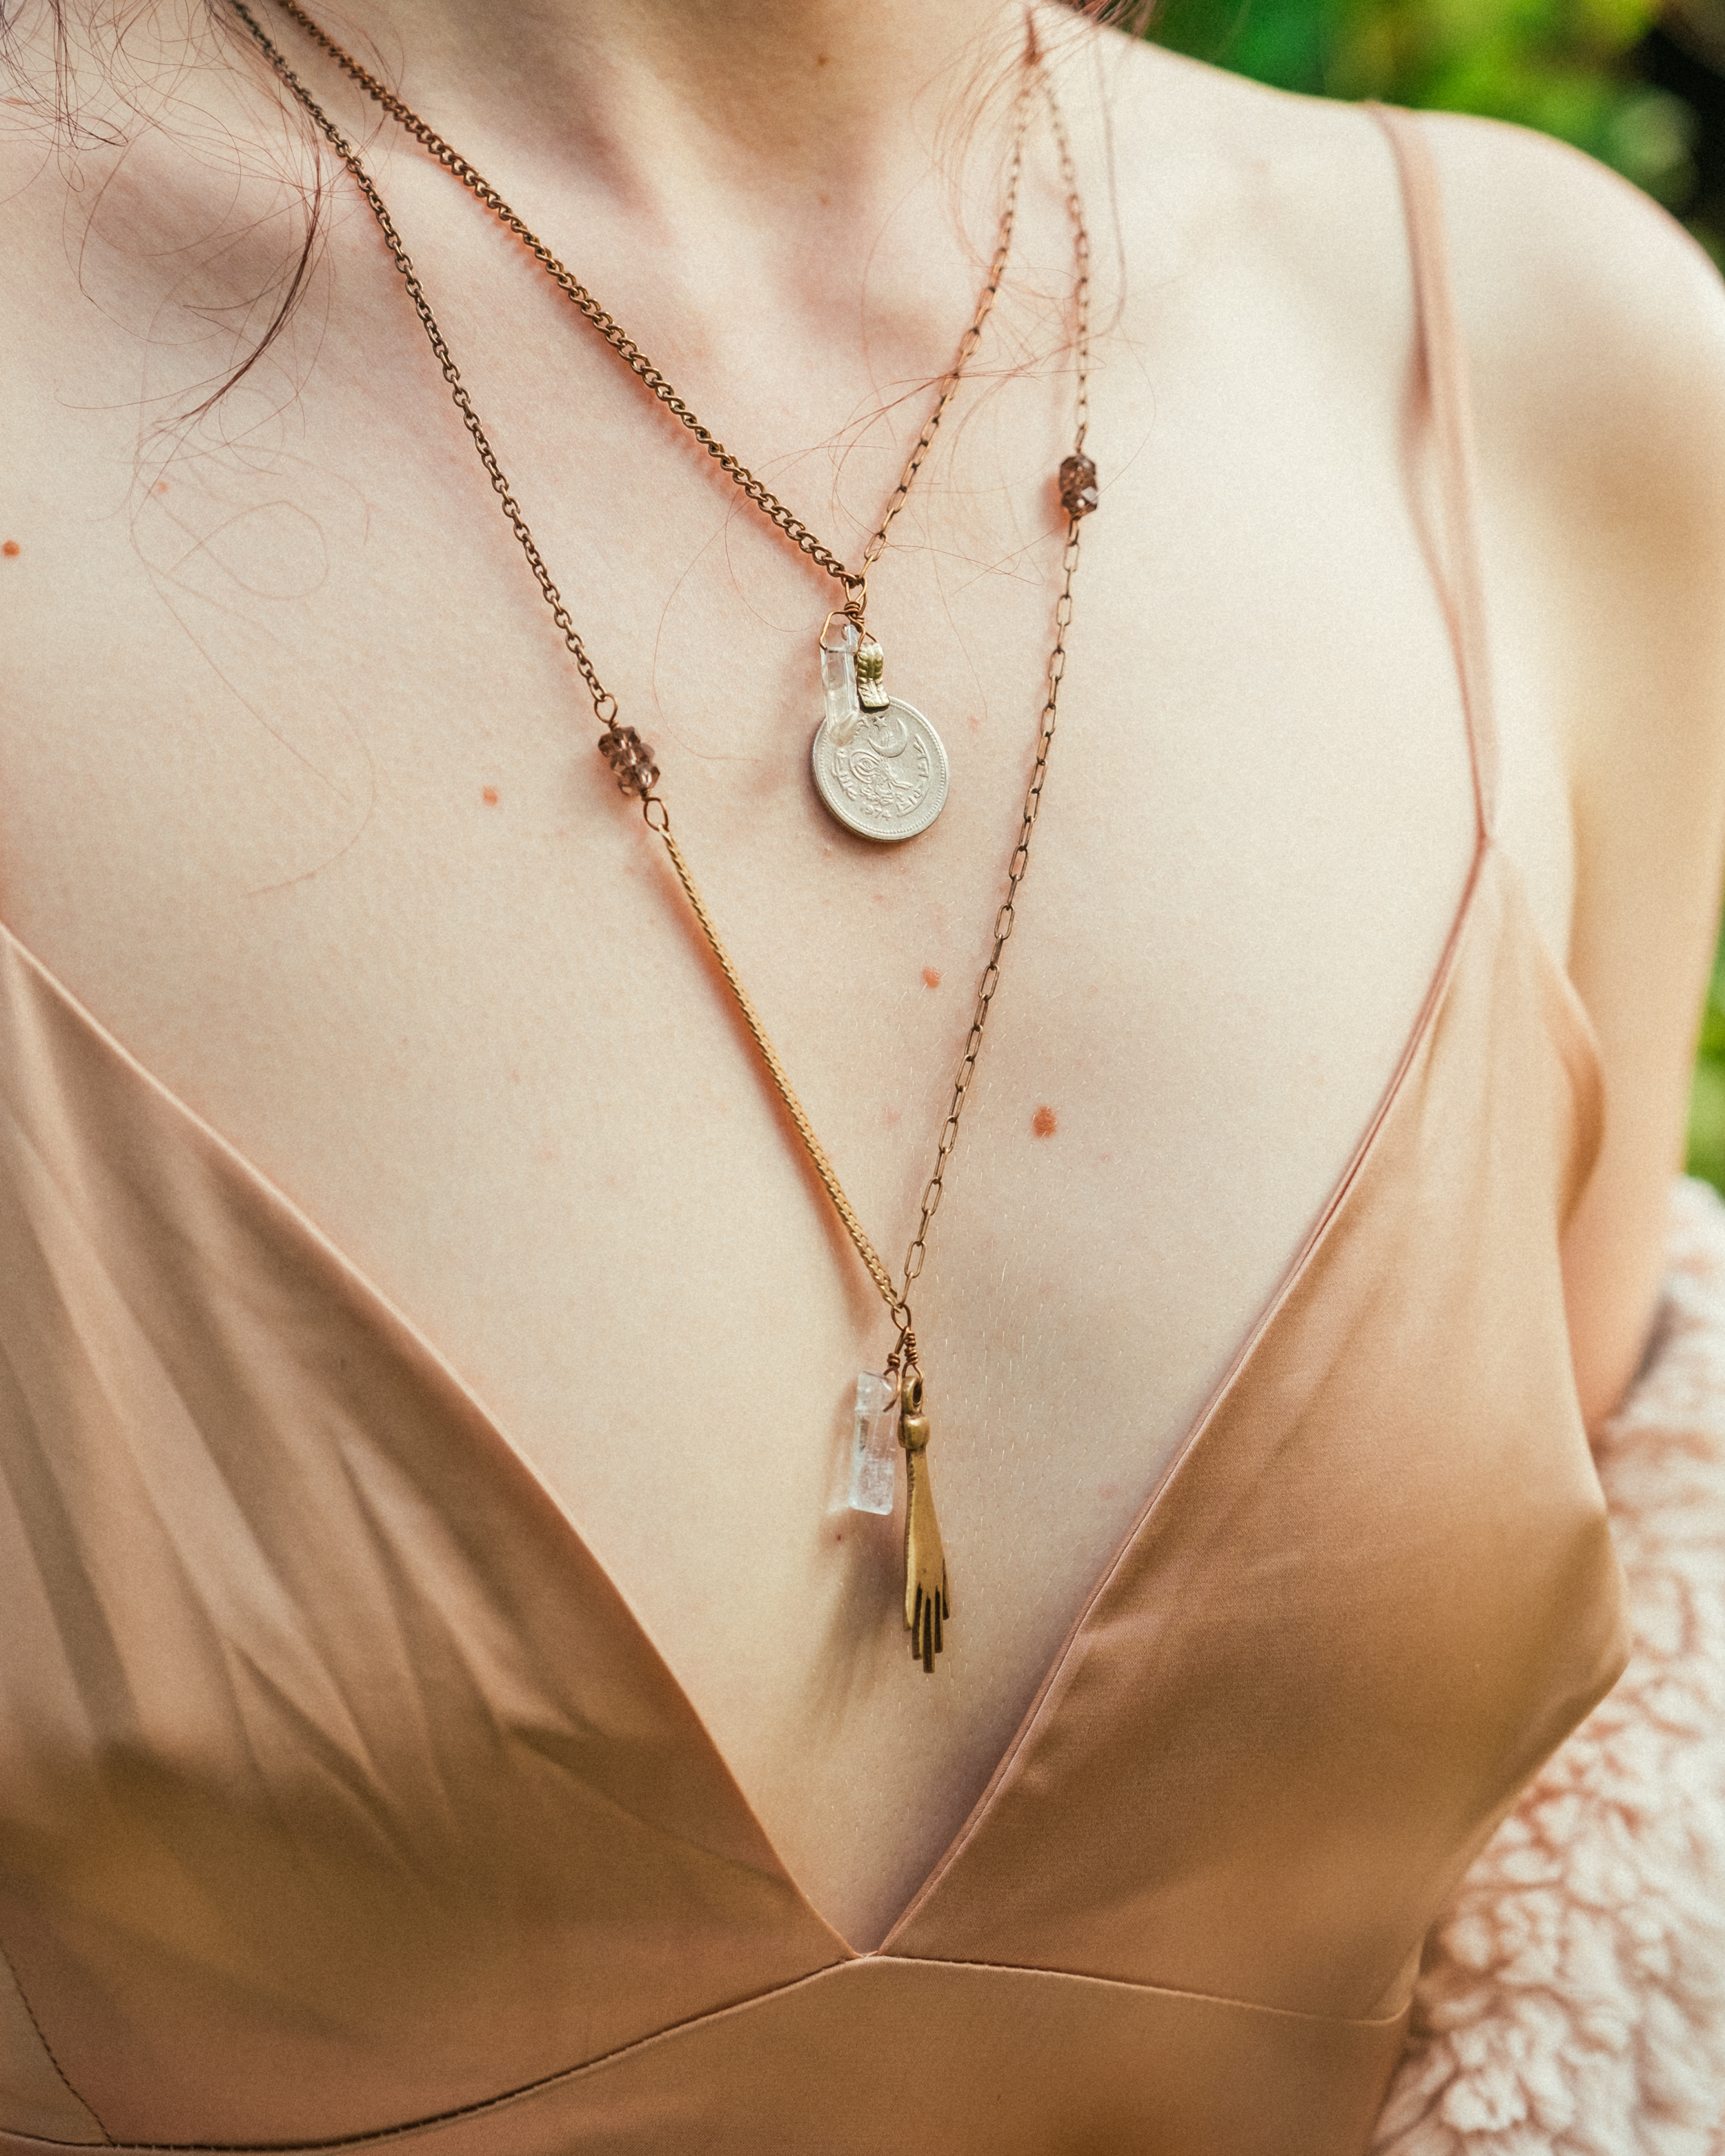 Vintage coin & crystal necklace on brass. Paired with Frida long necklace on wire wrapped smokey quartz beads, 14kt gold, and brass. Photo by Richard Fusillo.